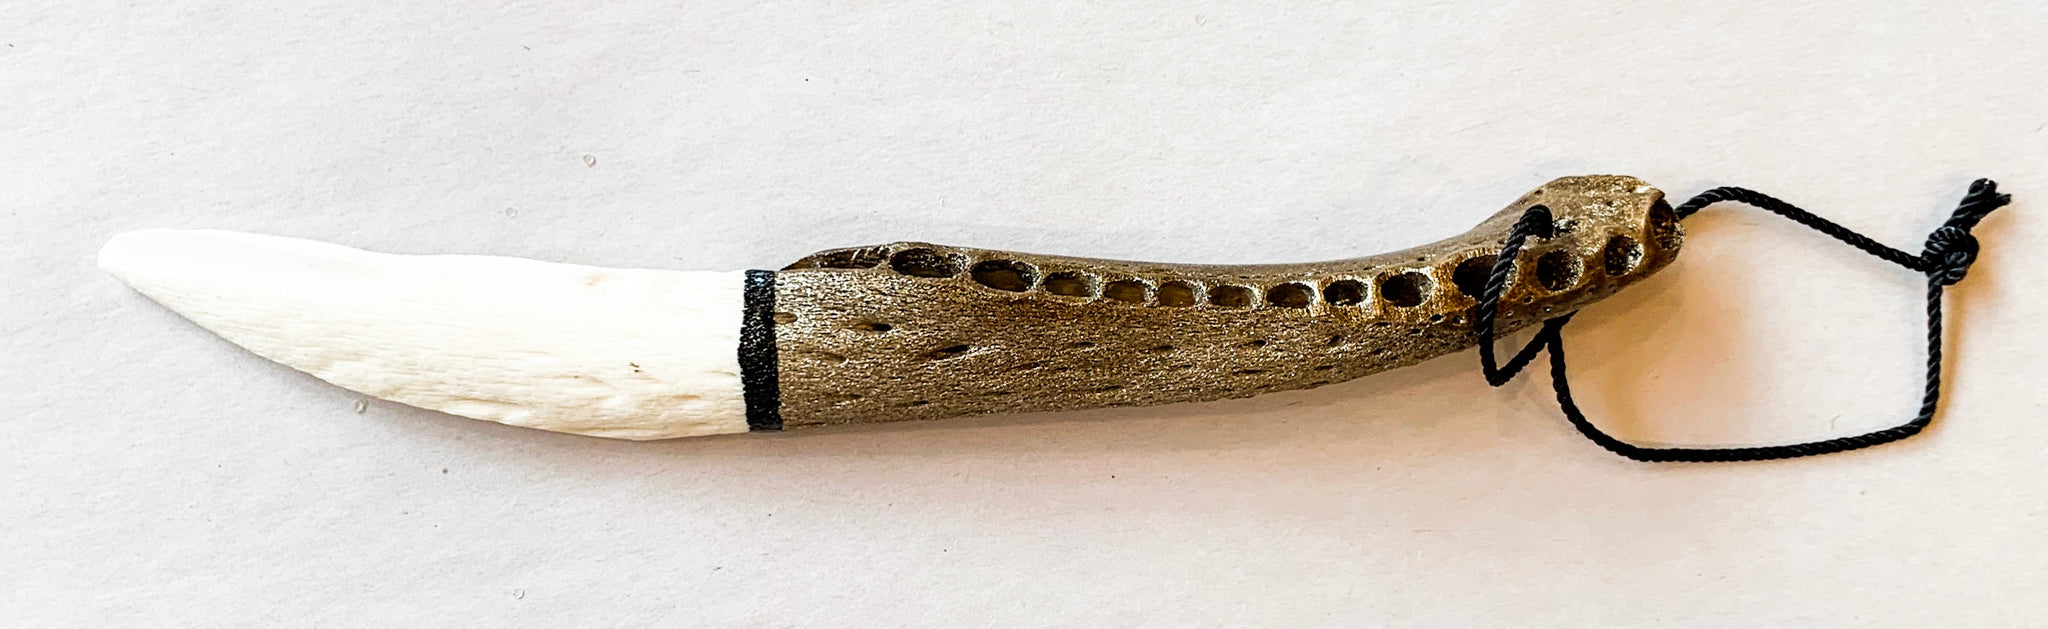 Alligator Jawbone Knife - 318 Art and Garden